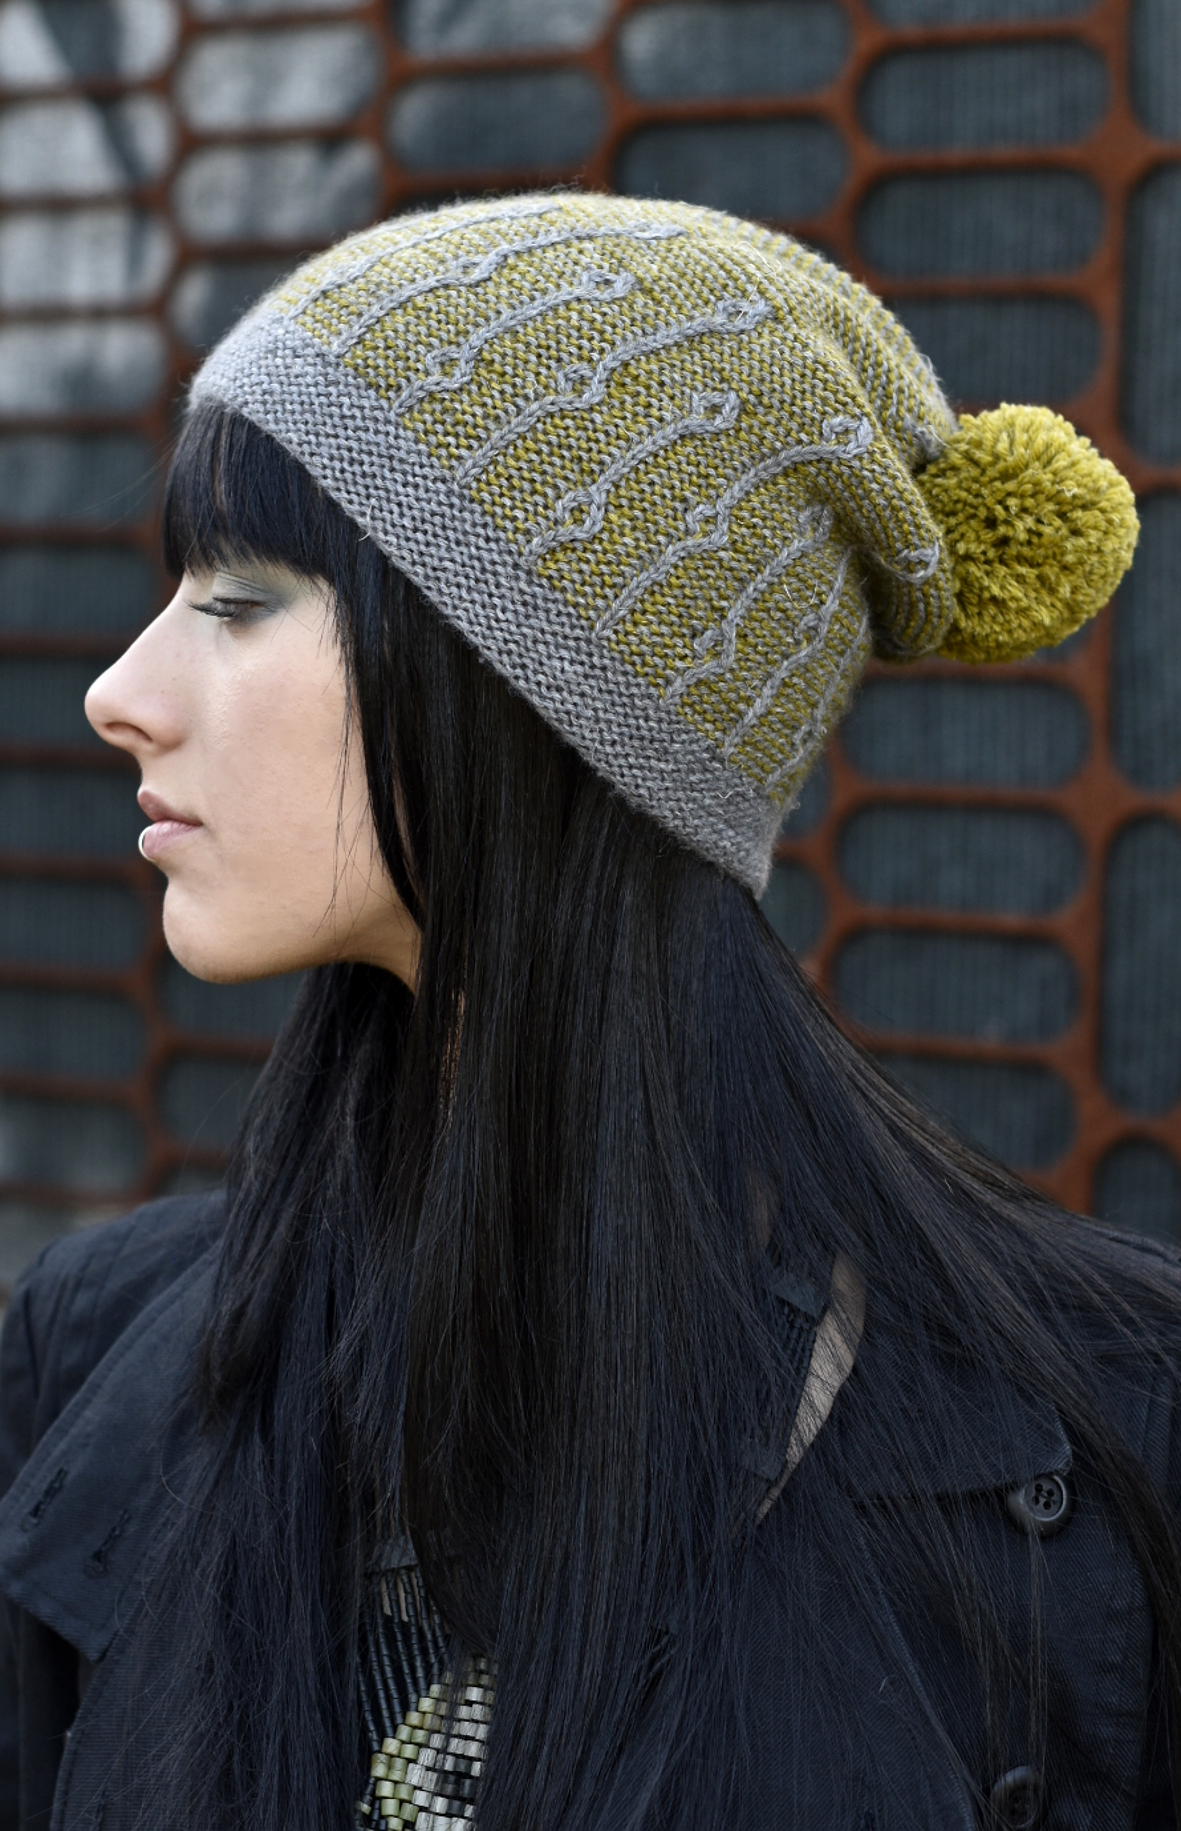 Joyce slouchy slipped stitch Hat hand knitting pattern